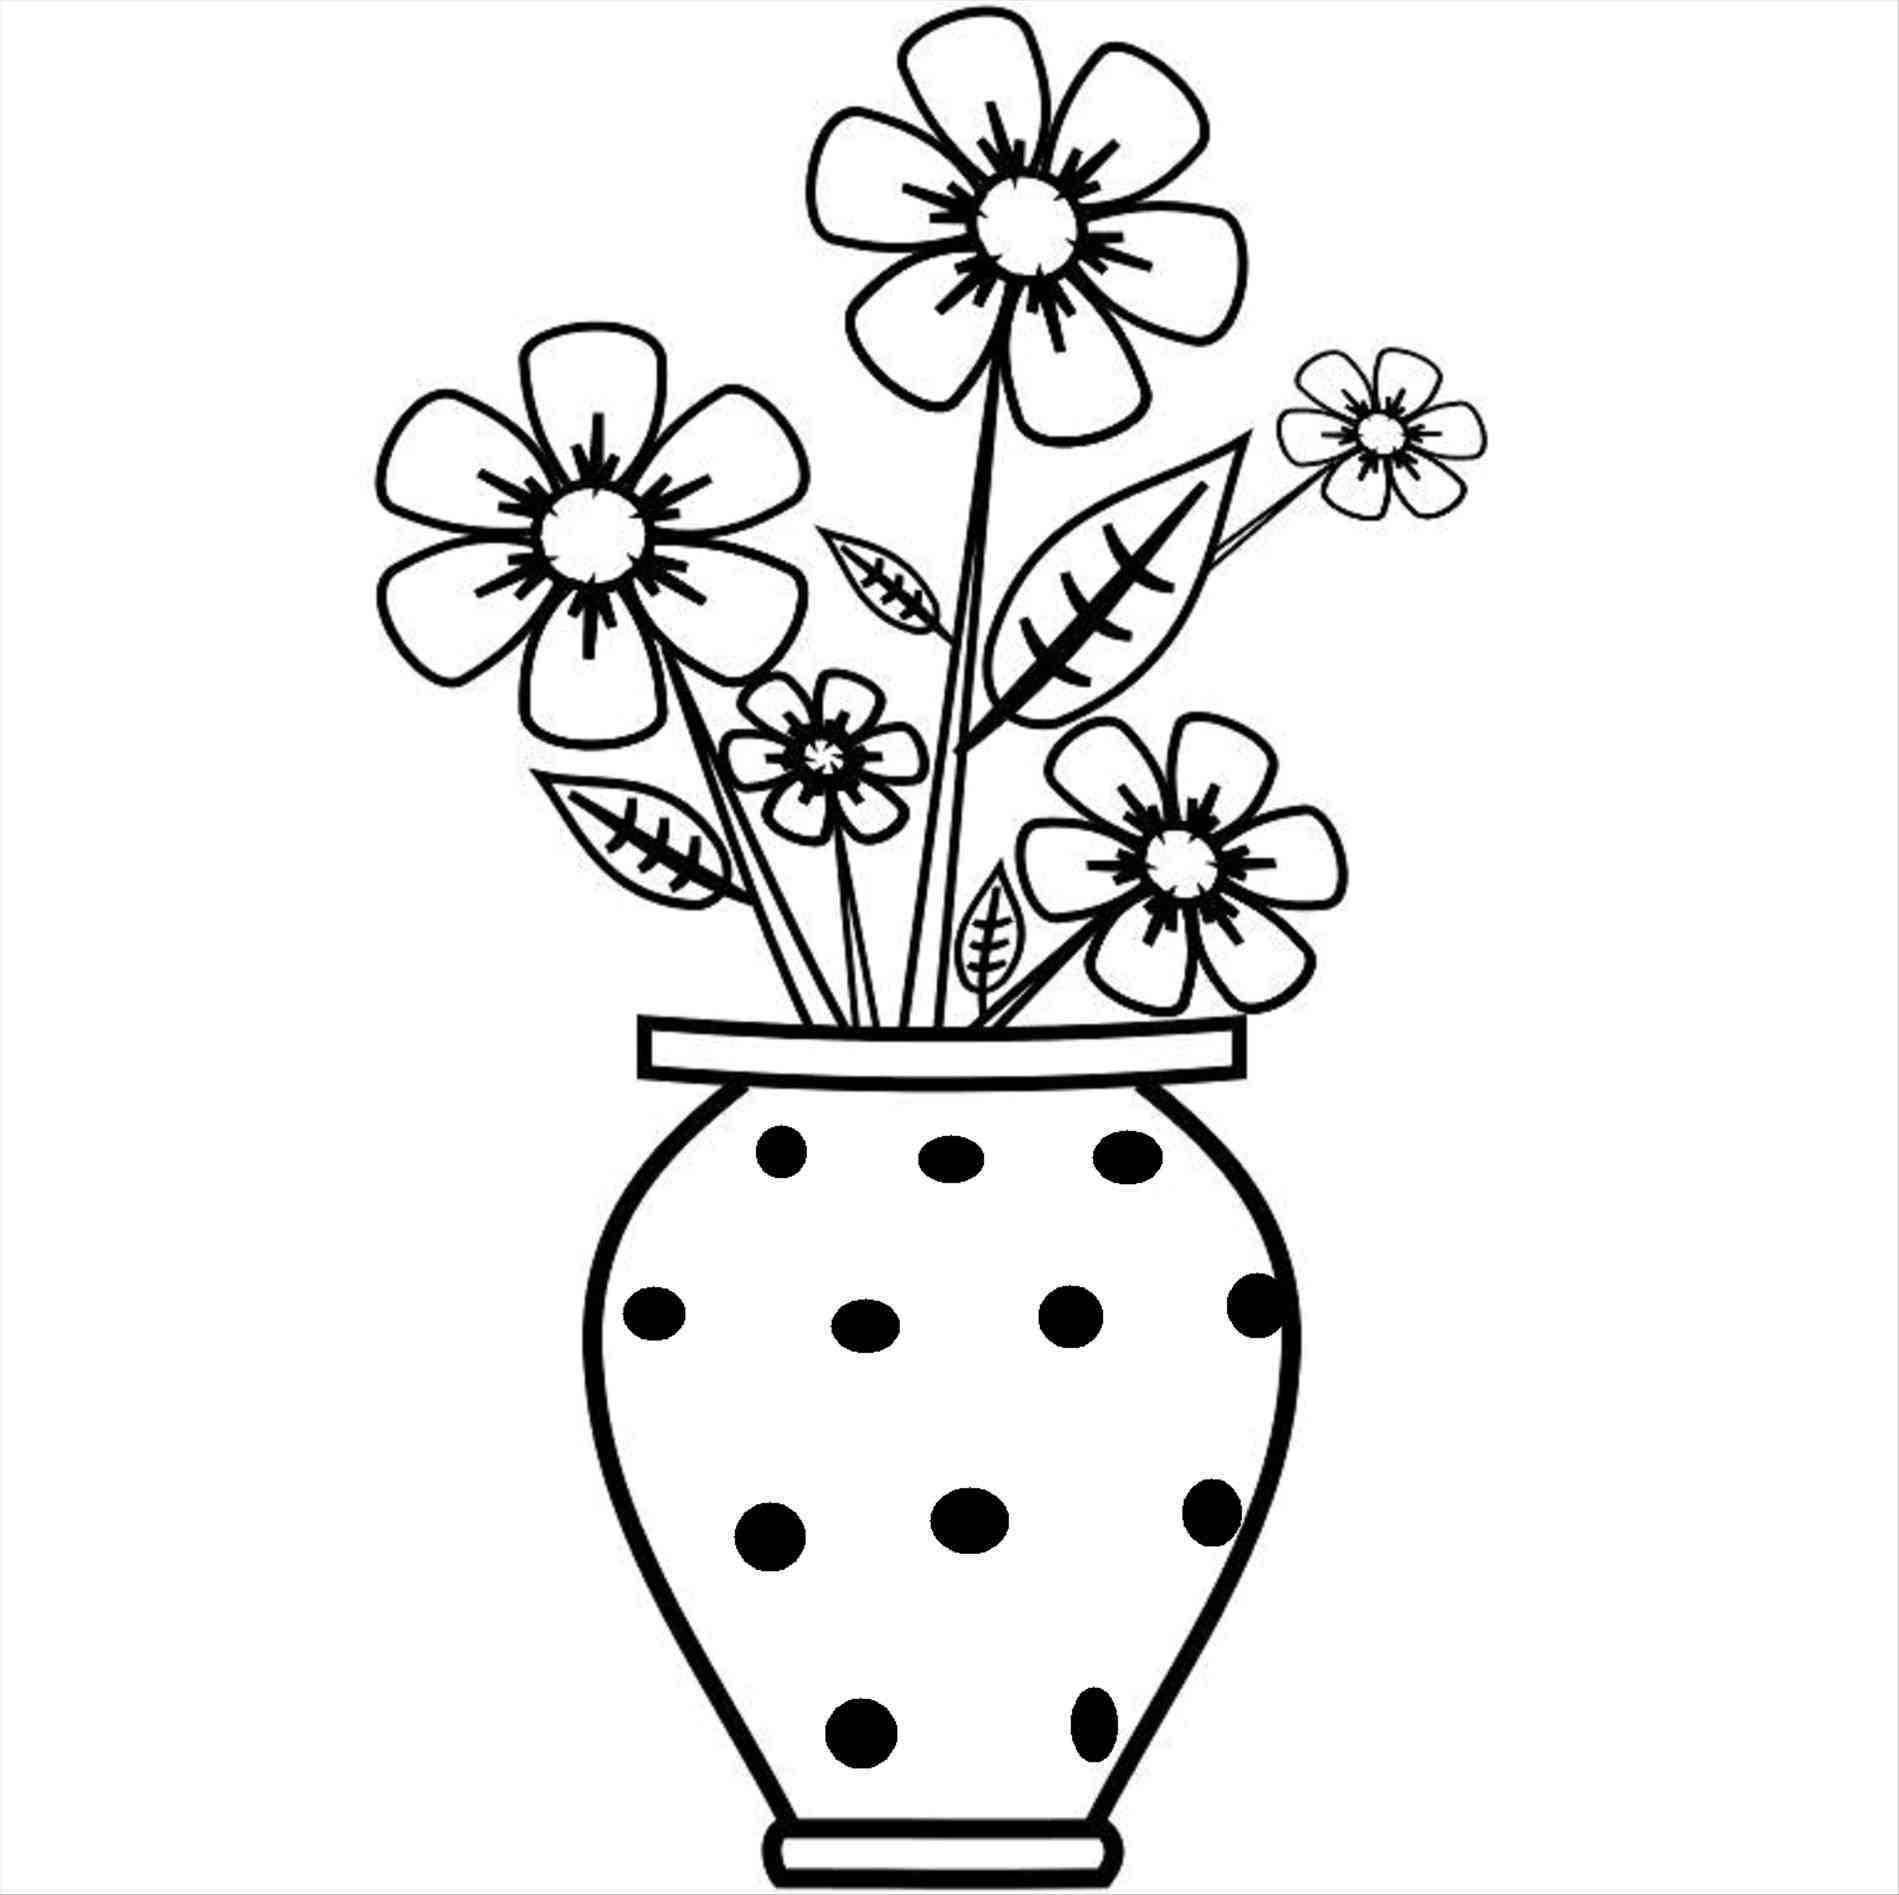 Flower Drawings For Kids Flower Drawing For Kids Easy Flower